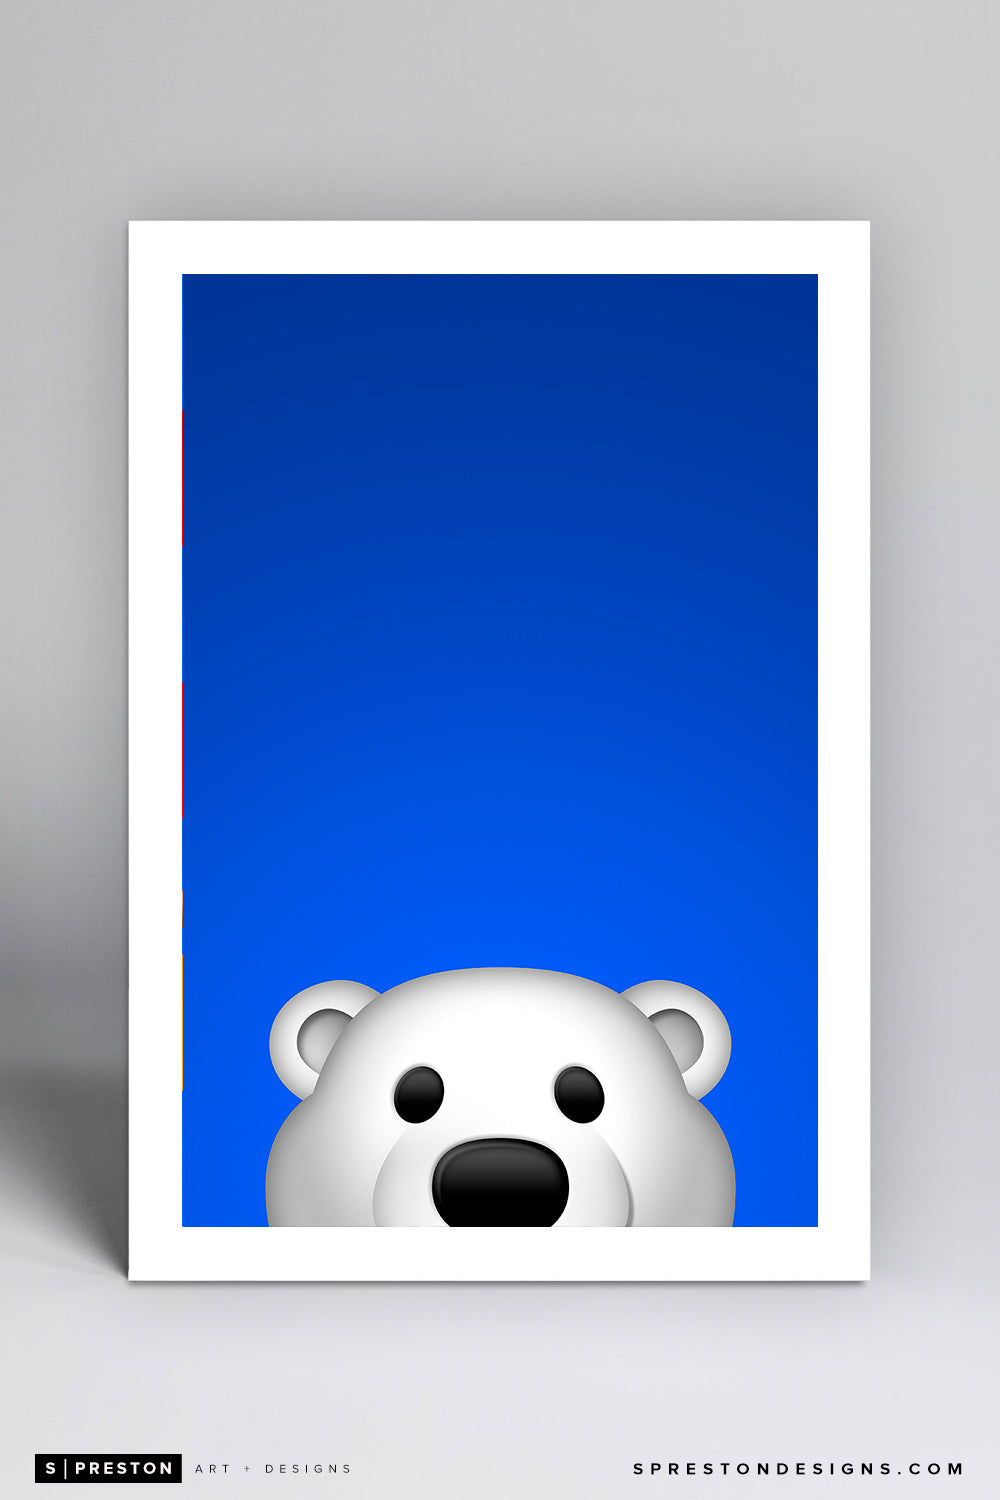 Minimalist Carlton The Bear - Toronto Maple Leafs - S. Preston